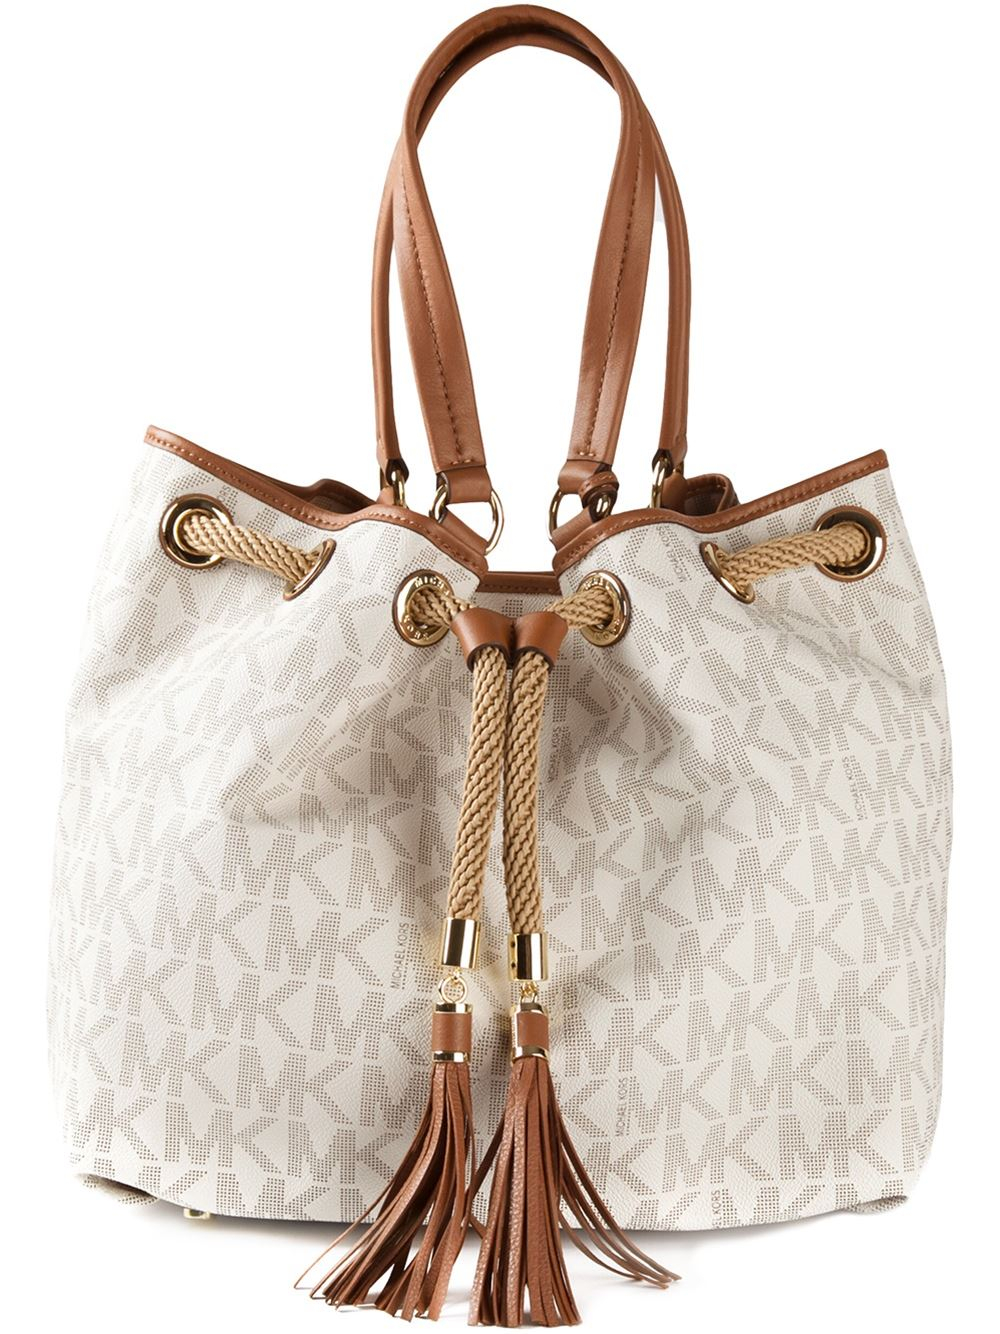 c08acf185a13 Gallery. Previously sold at: Farfetch · Women's Michael Kors Camden